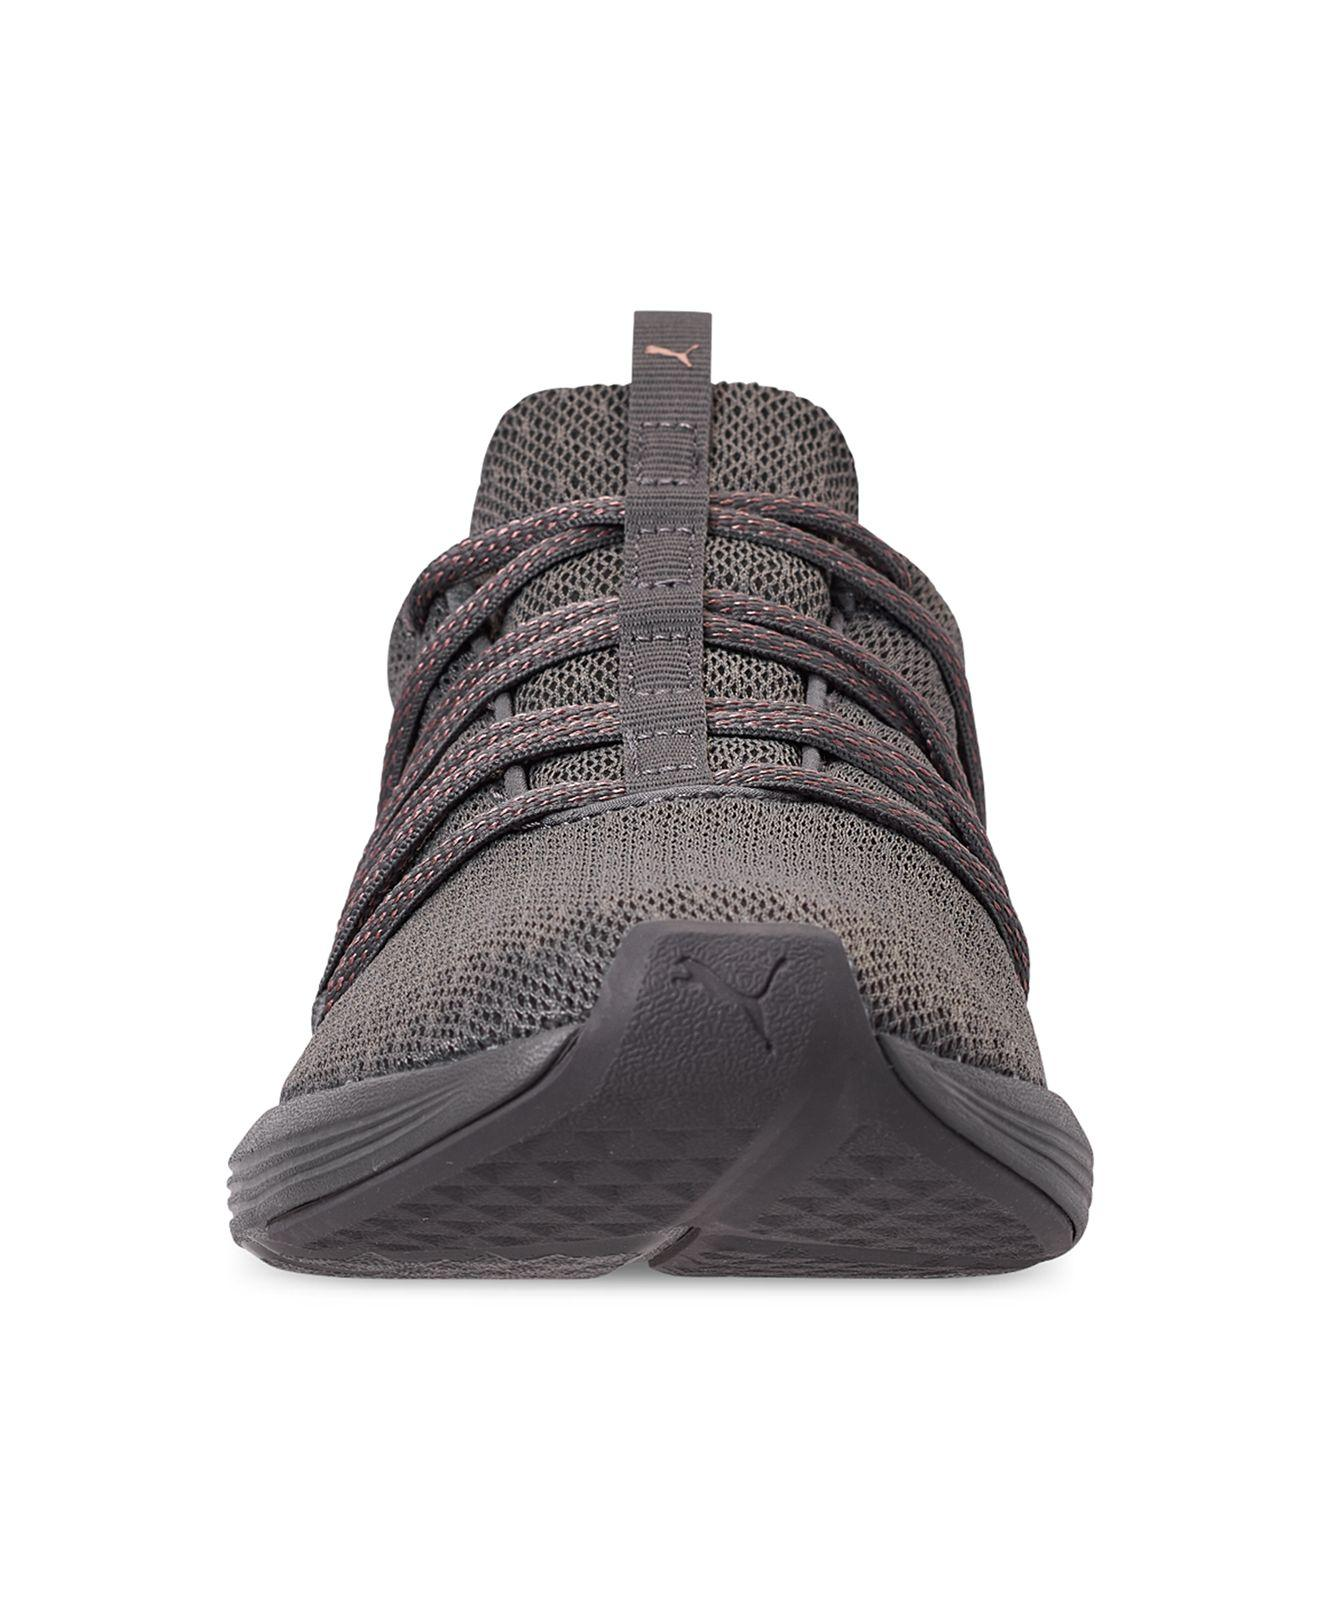 bb589f6c45a Women's Gray Prowl Alt Knit Mesh Training Sneakers From Finish Line